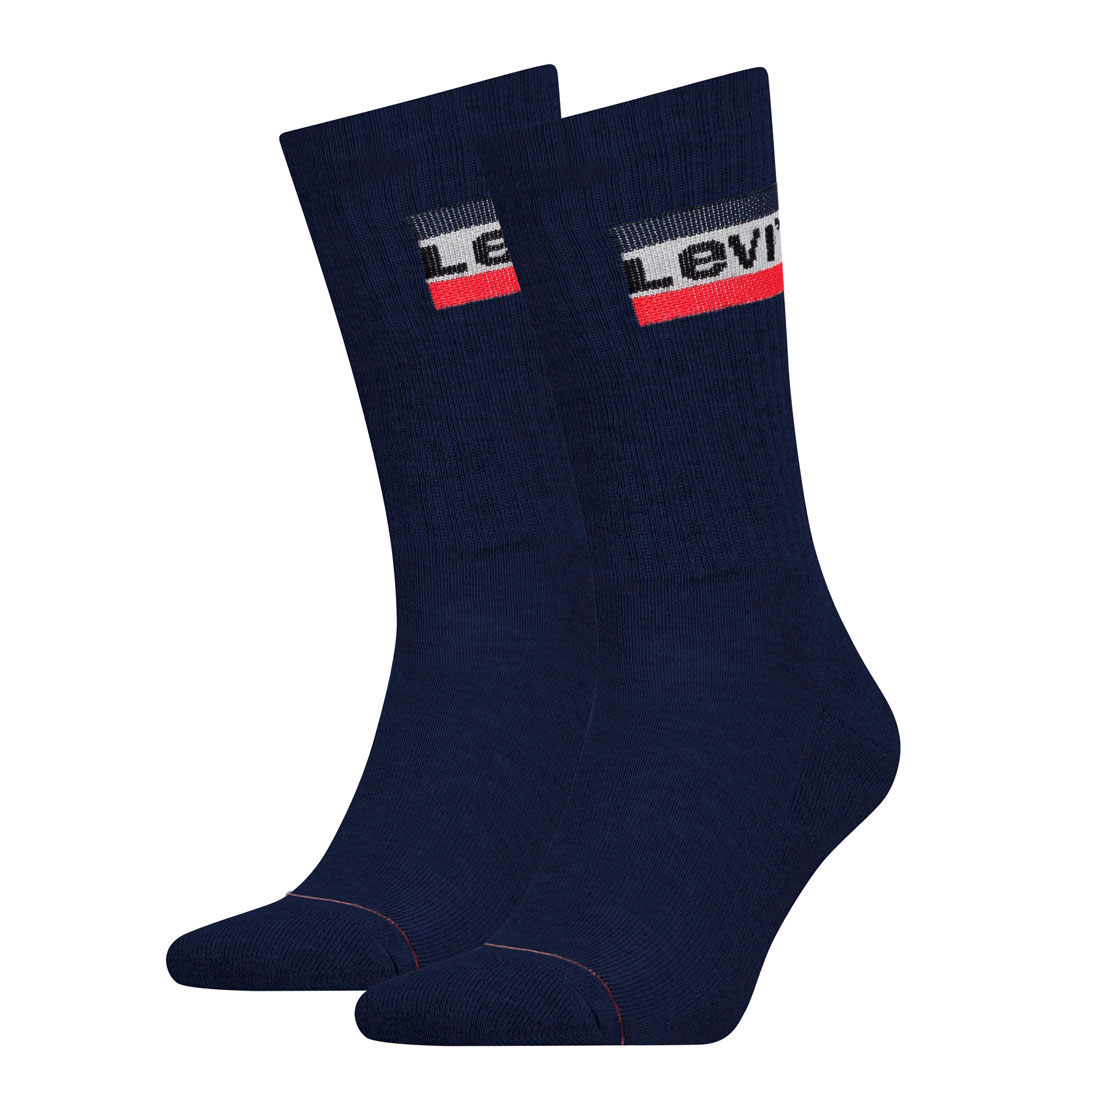 2 Paar Levis 144NDL Regular Cut SPR Unisex Socken Strümpfe 902012001 43-46, 198 - Dress Blues von Levi's